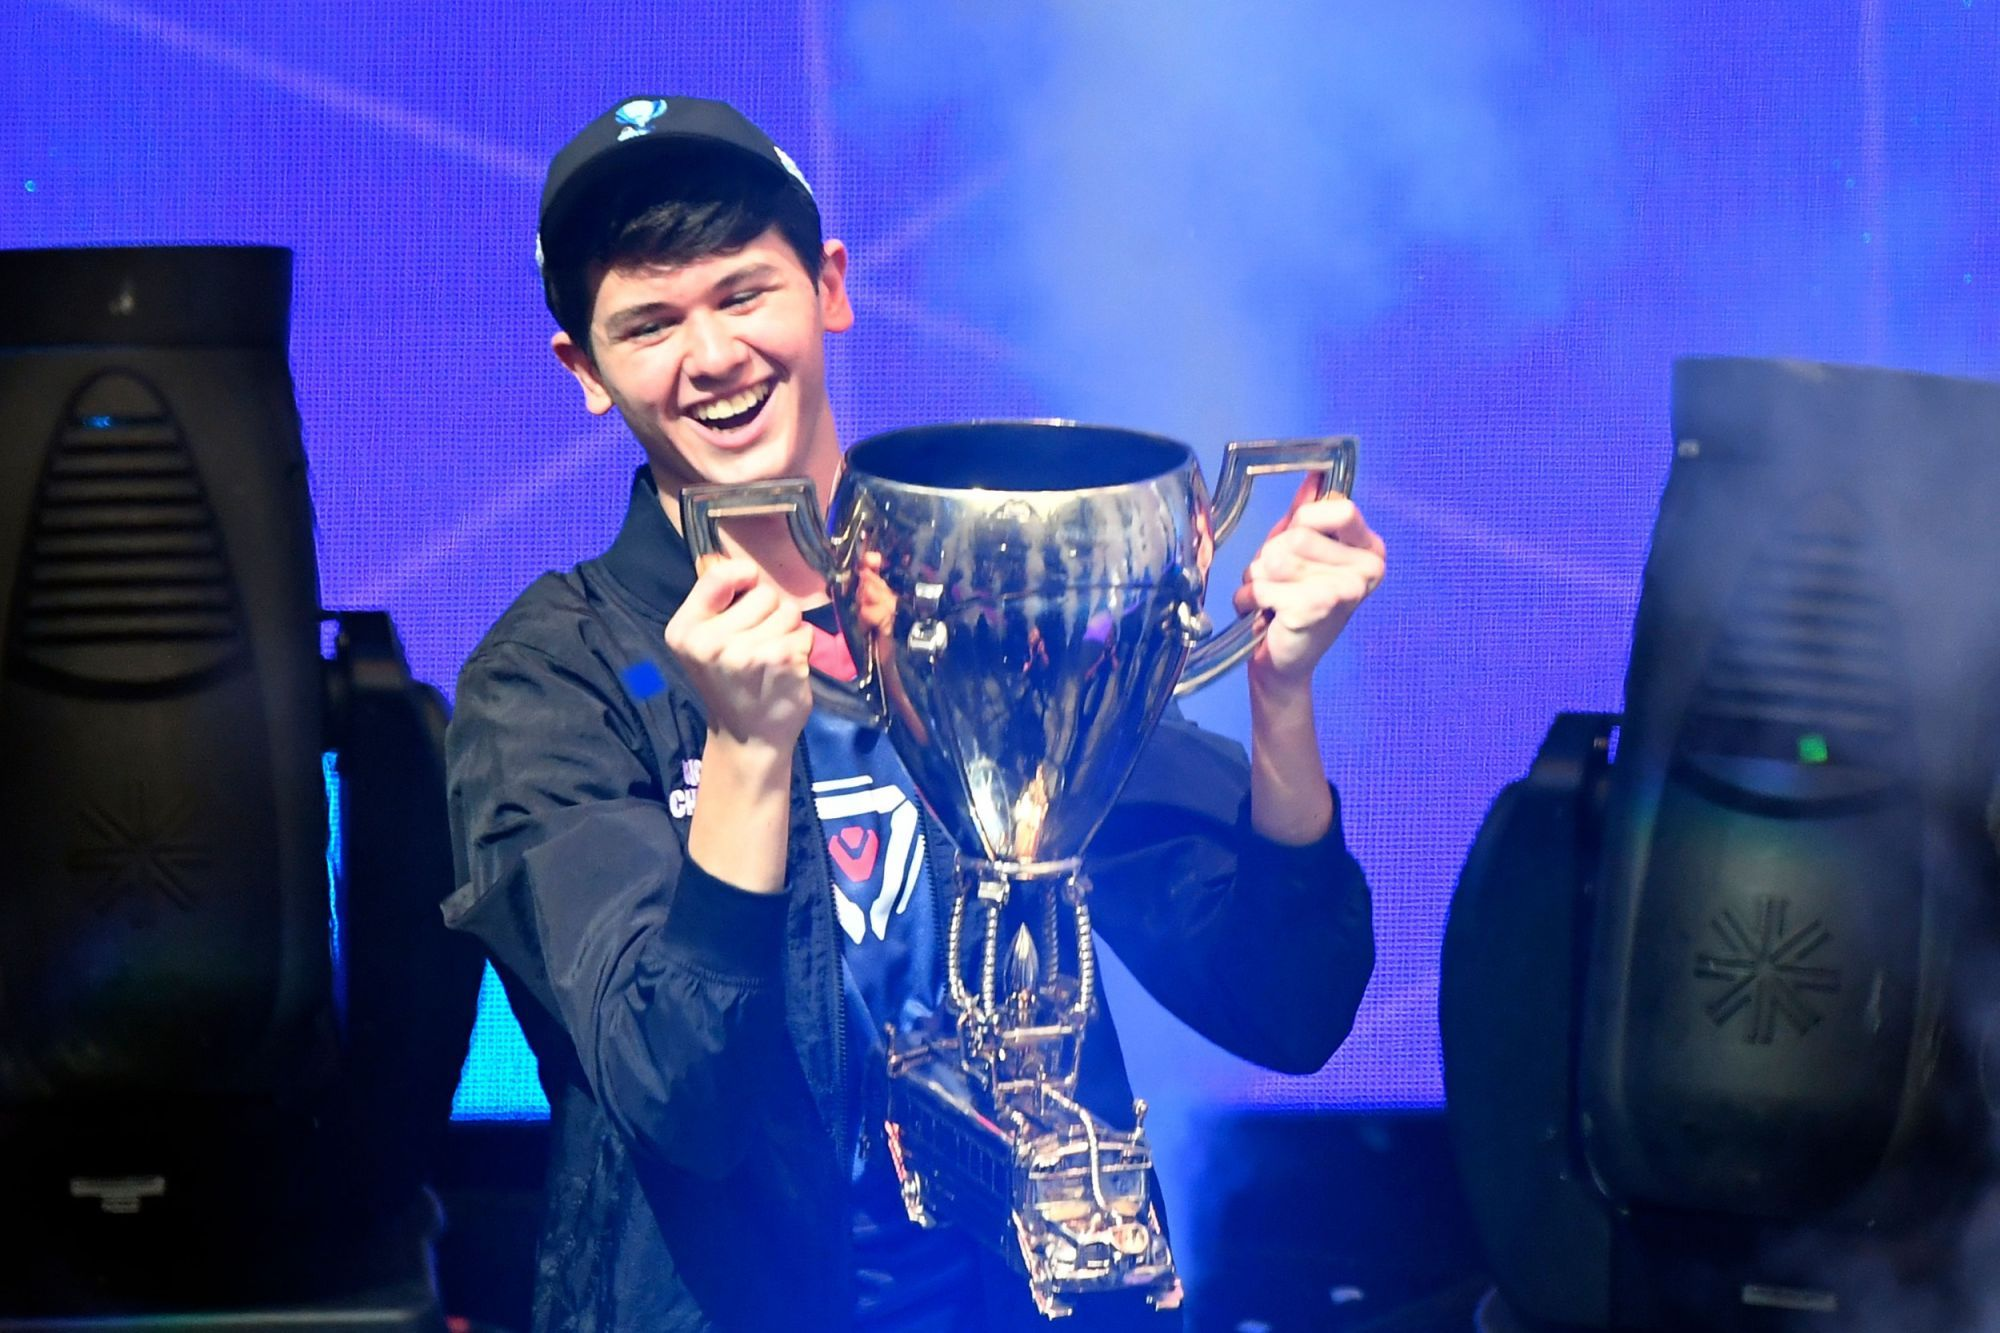 16 Year Old Wins First Ever Fortnite World Cup And 3m World Cup 16 Year Old Video Game Tournaments